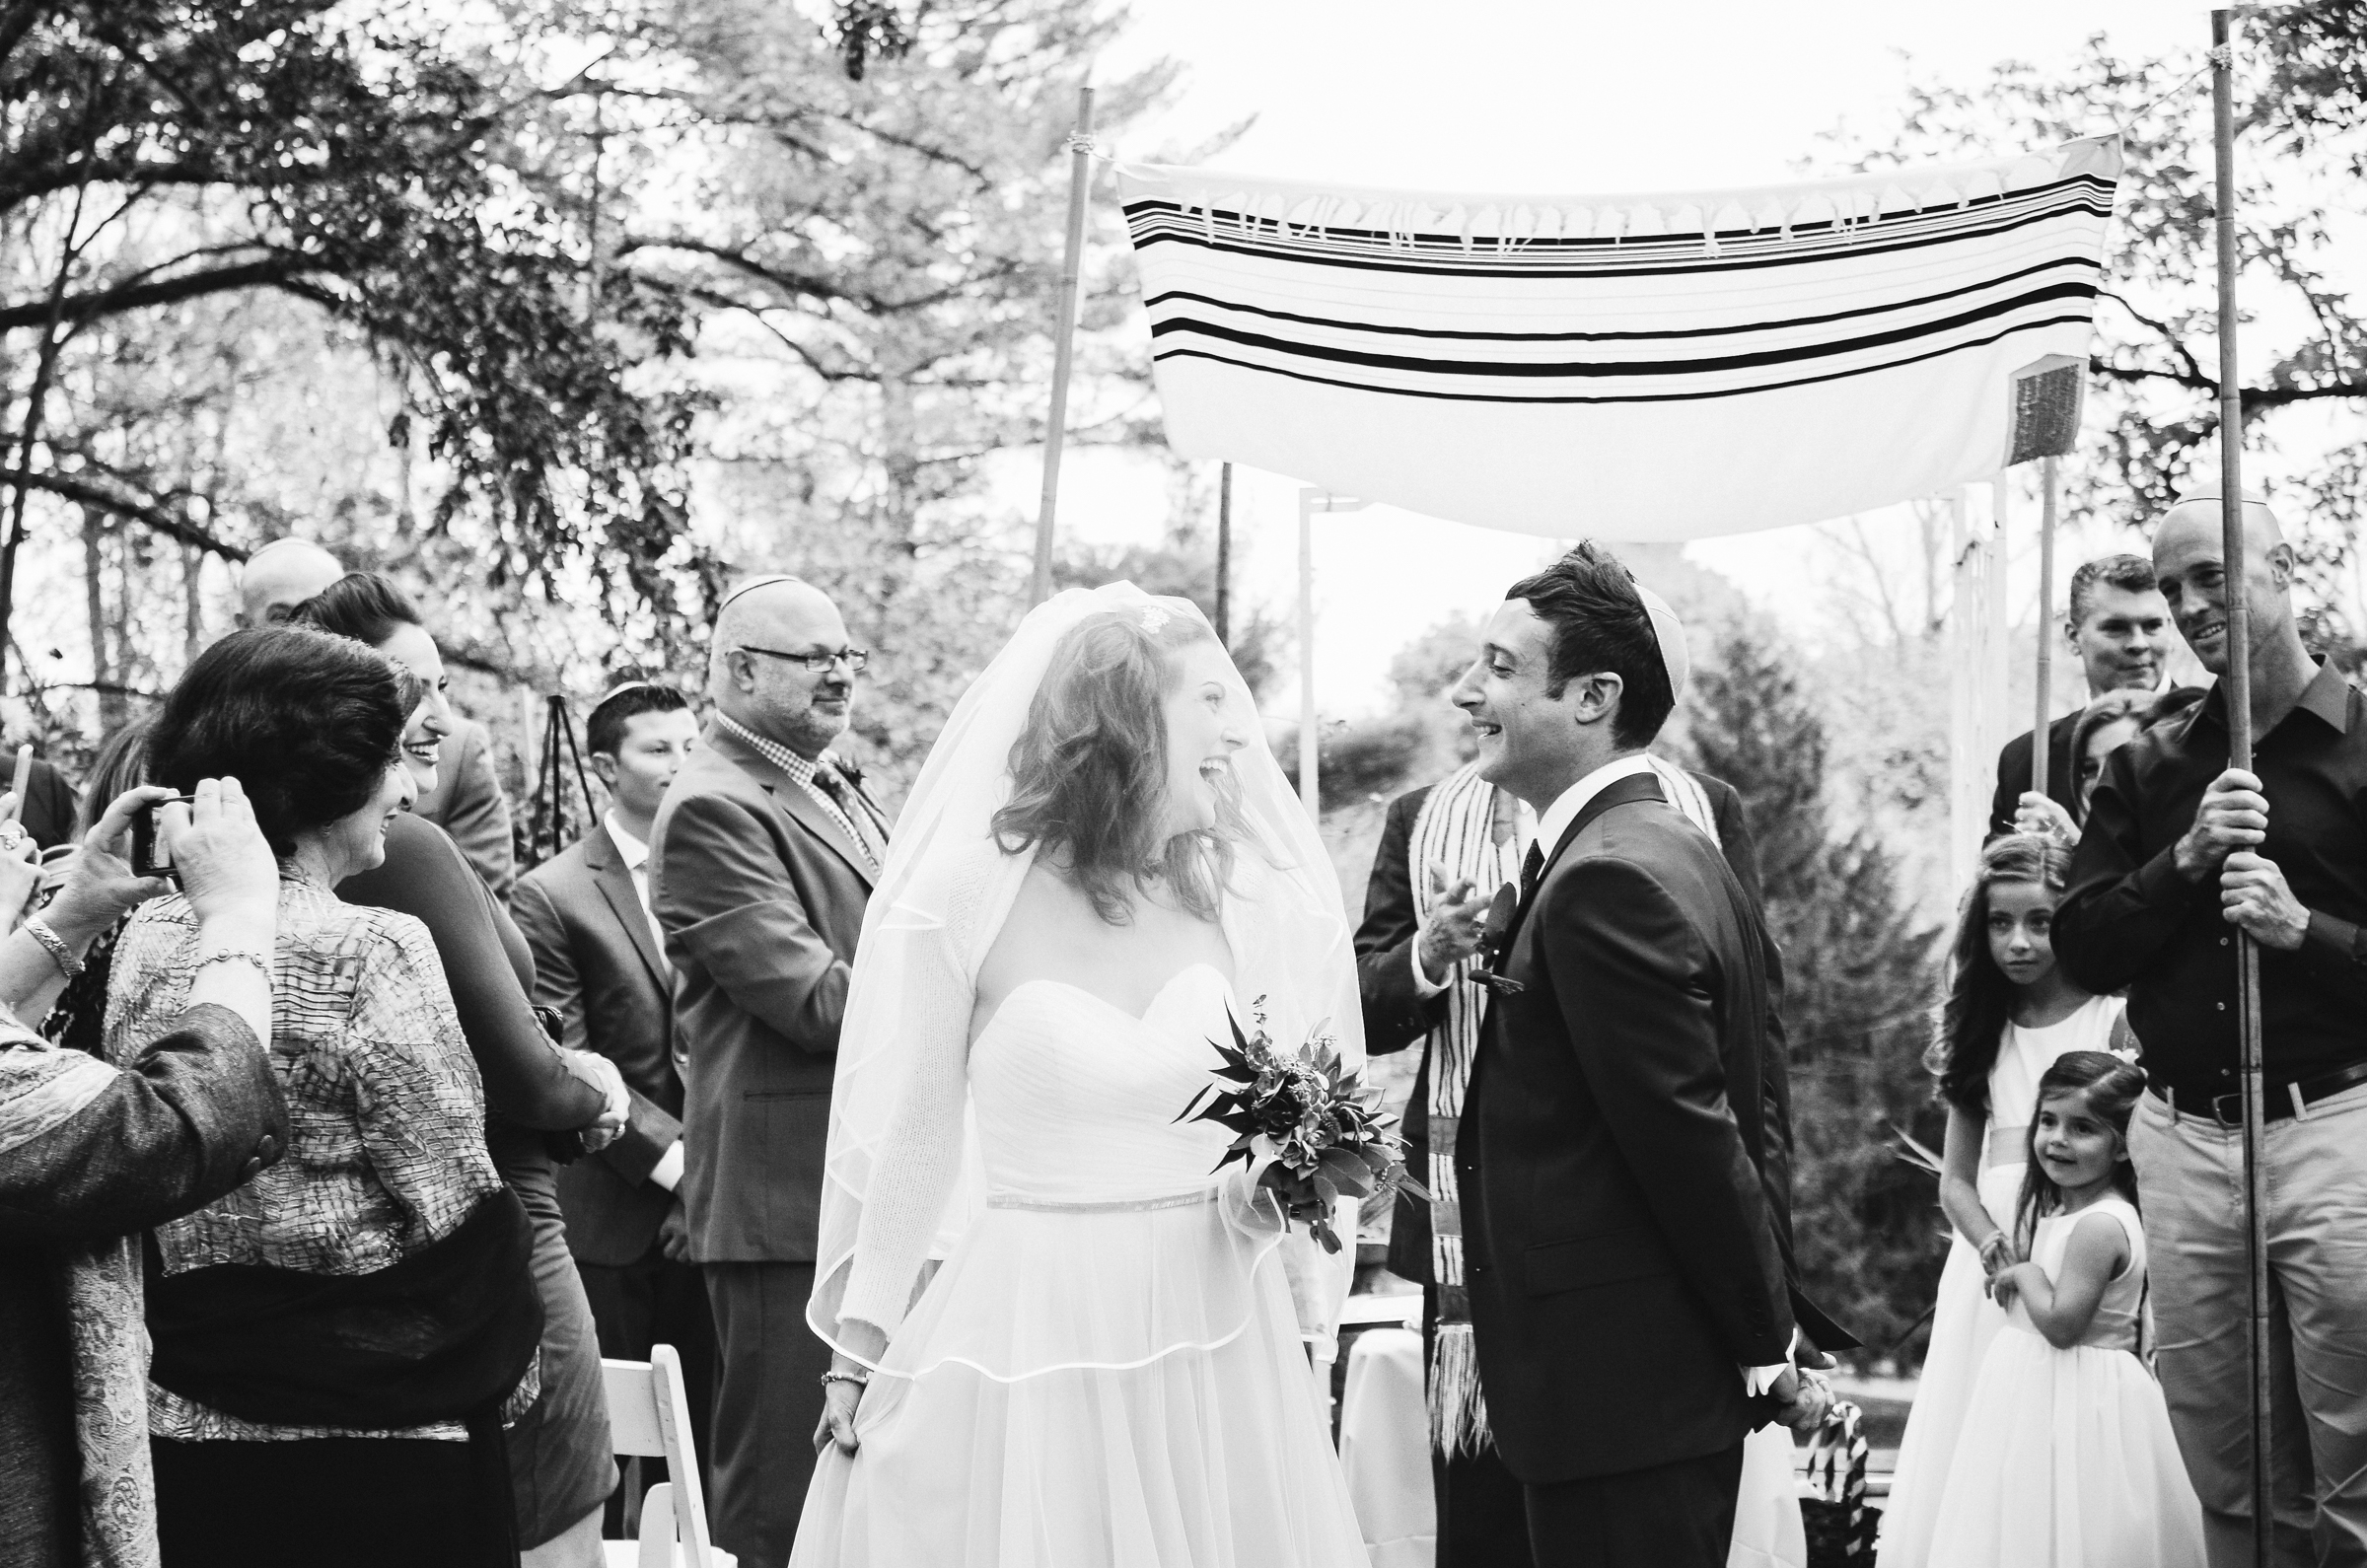 Jen and Drew's Wedding Edited 2019 web-52.jpg